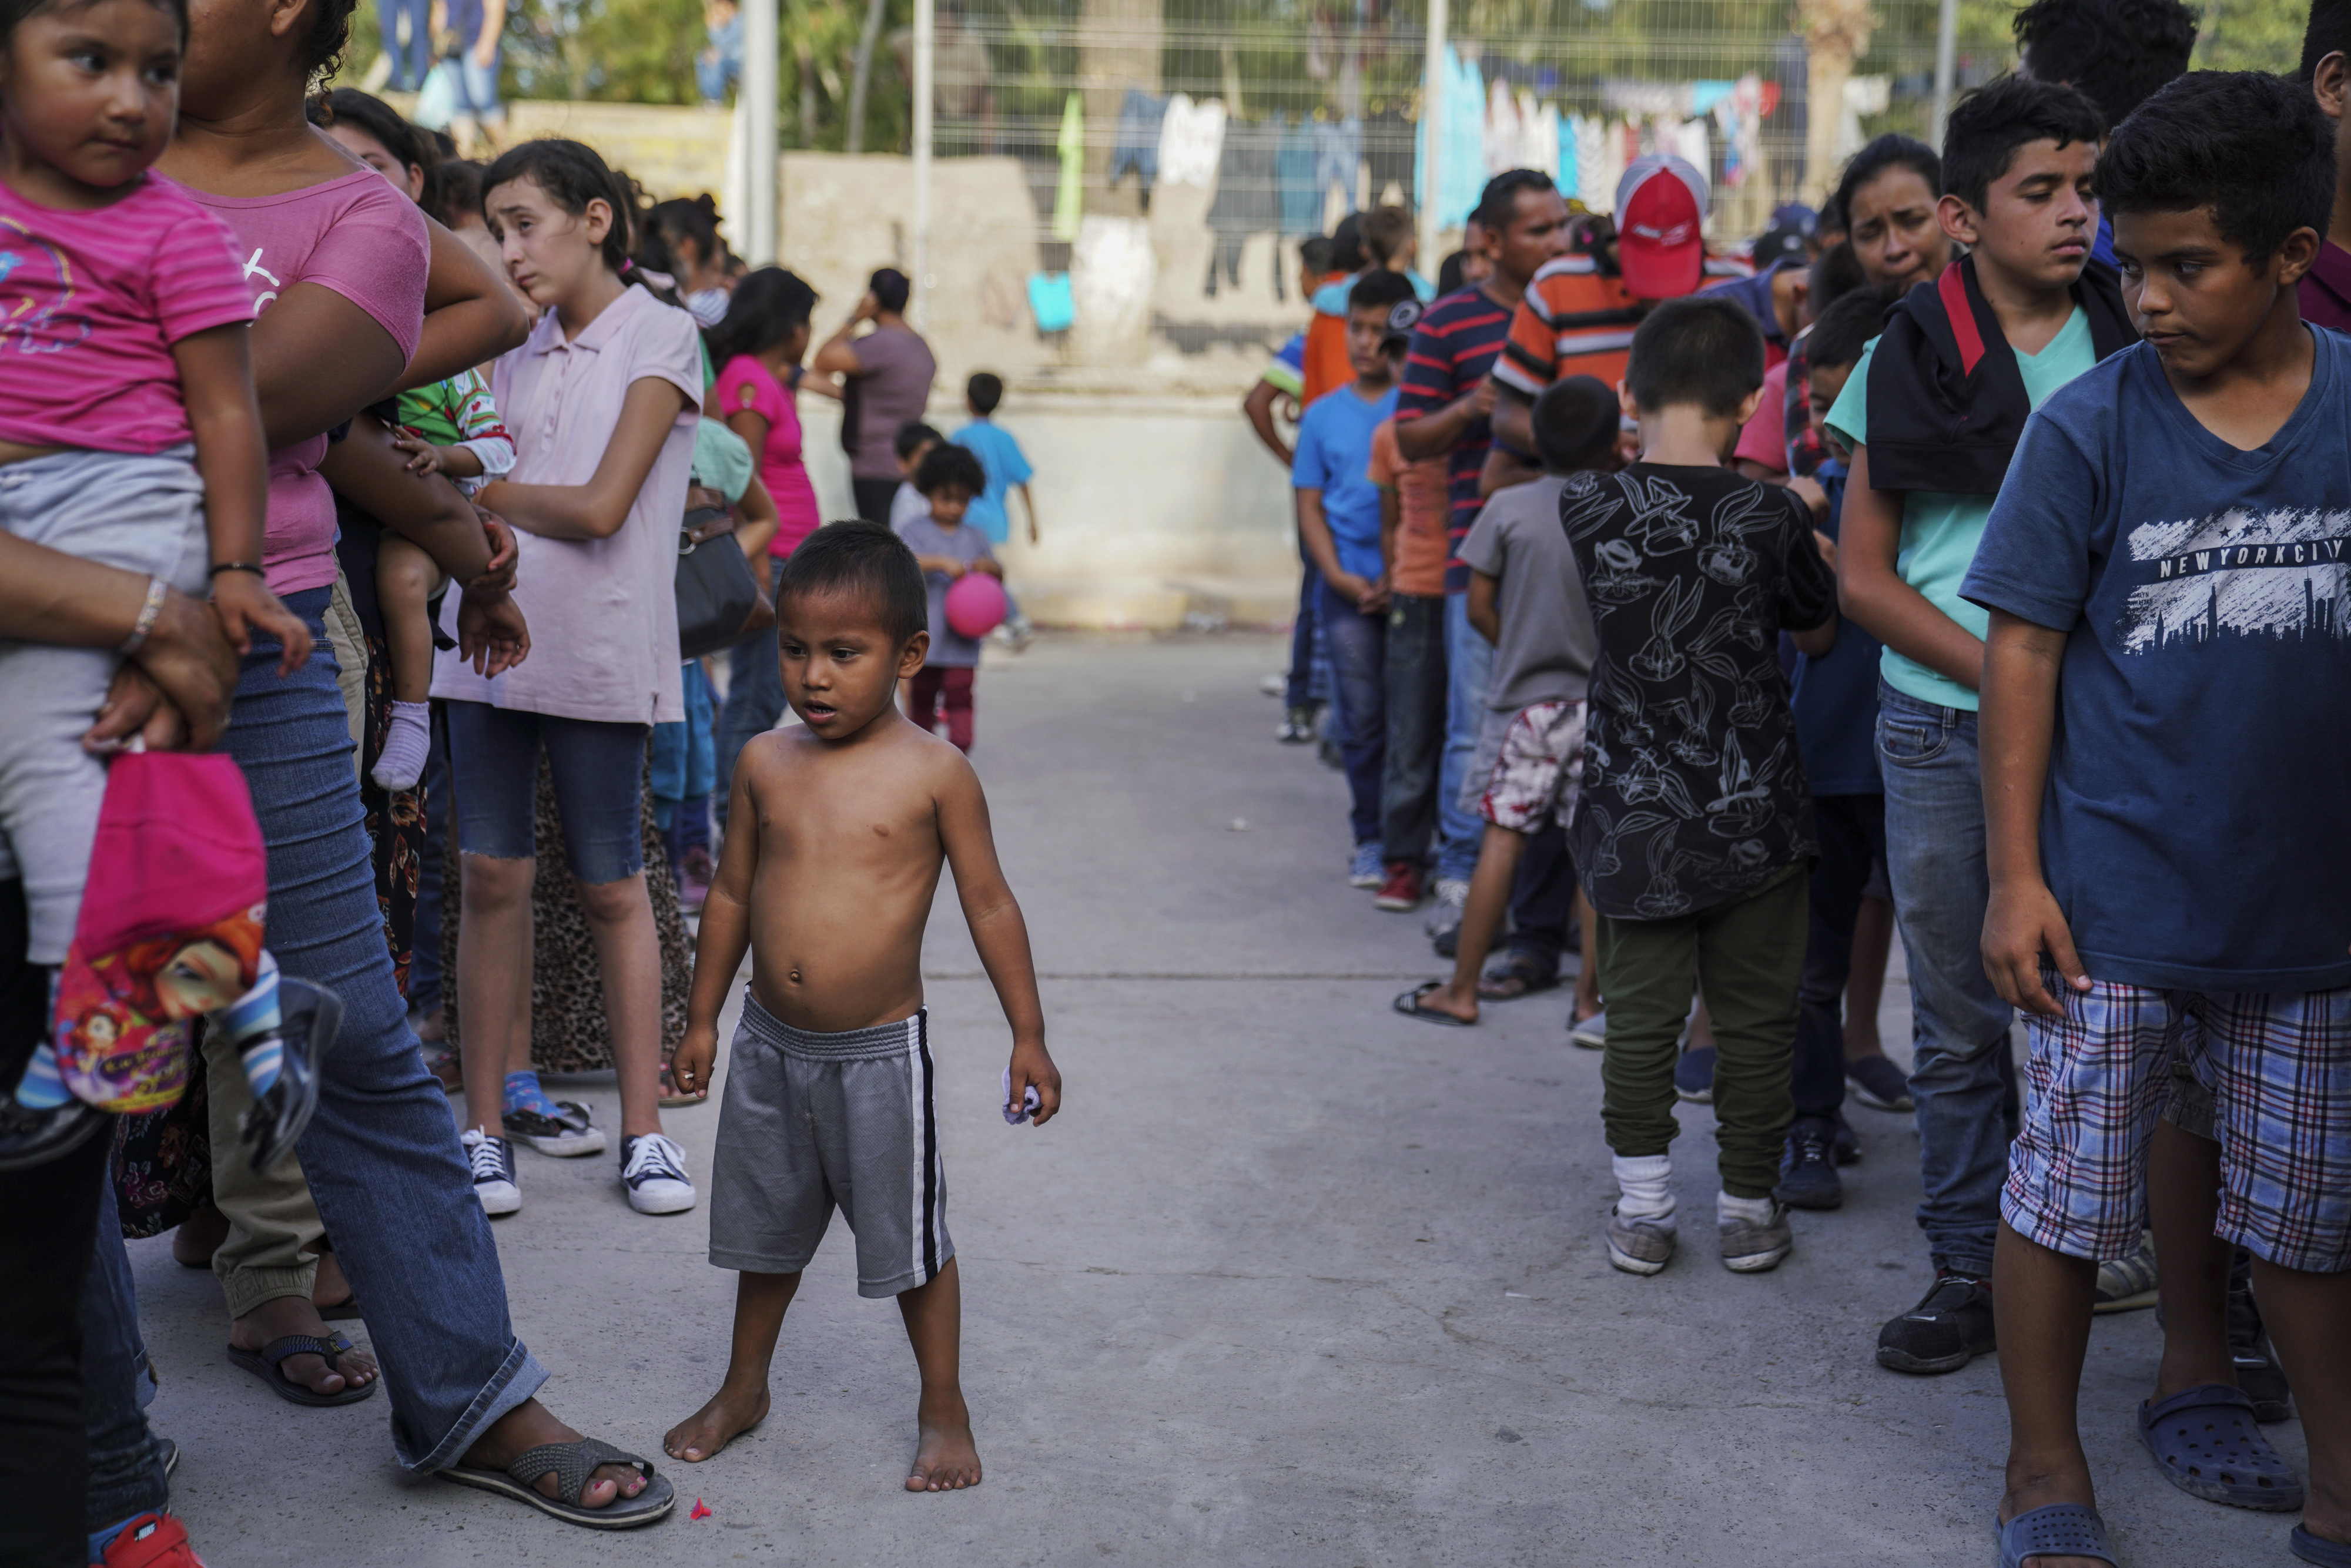 9th Circuit Court stays ruling blocking Trump asylum policy